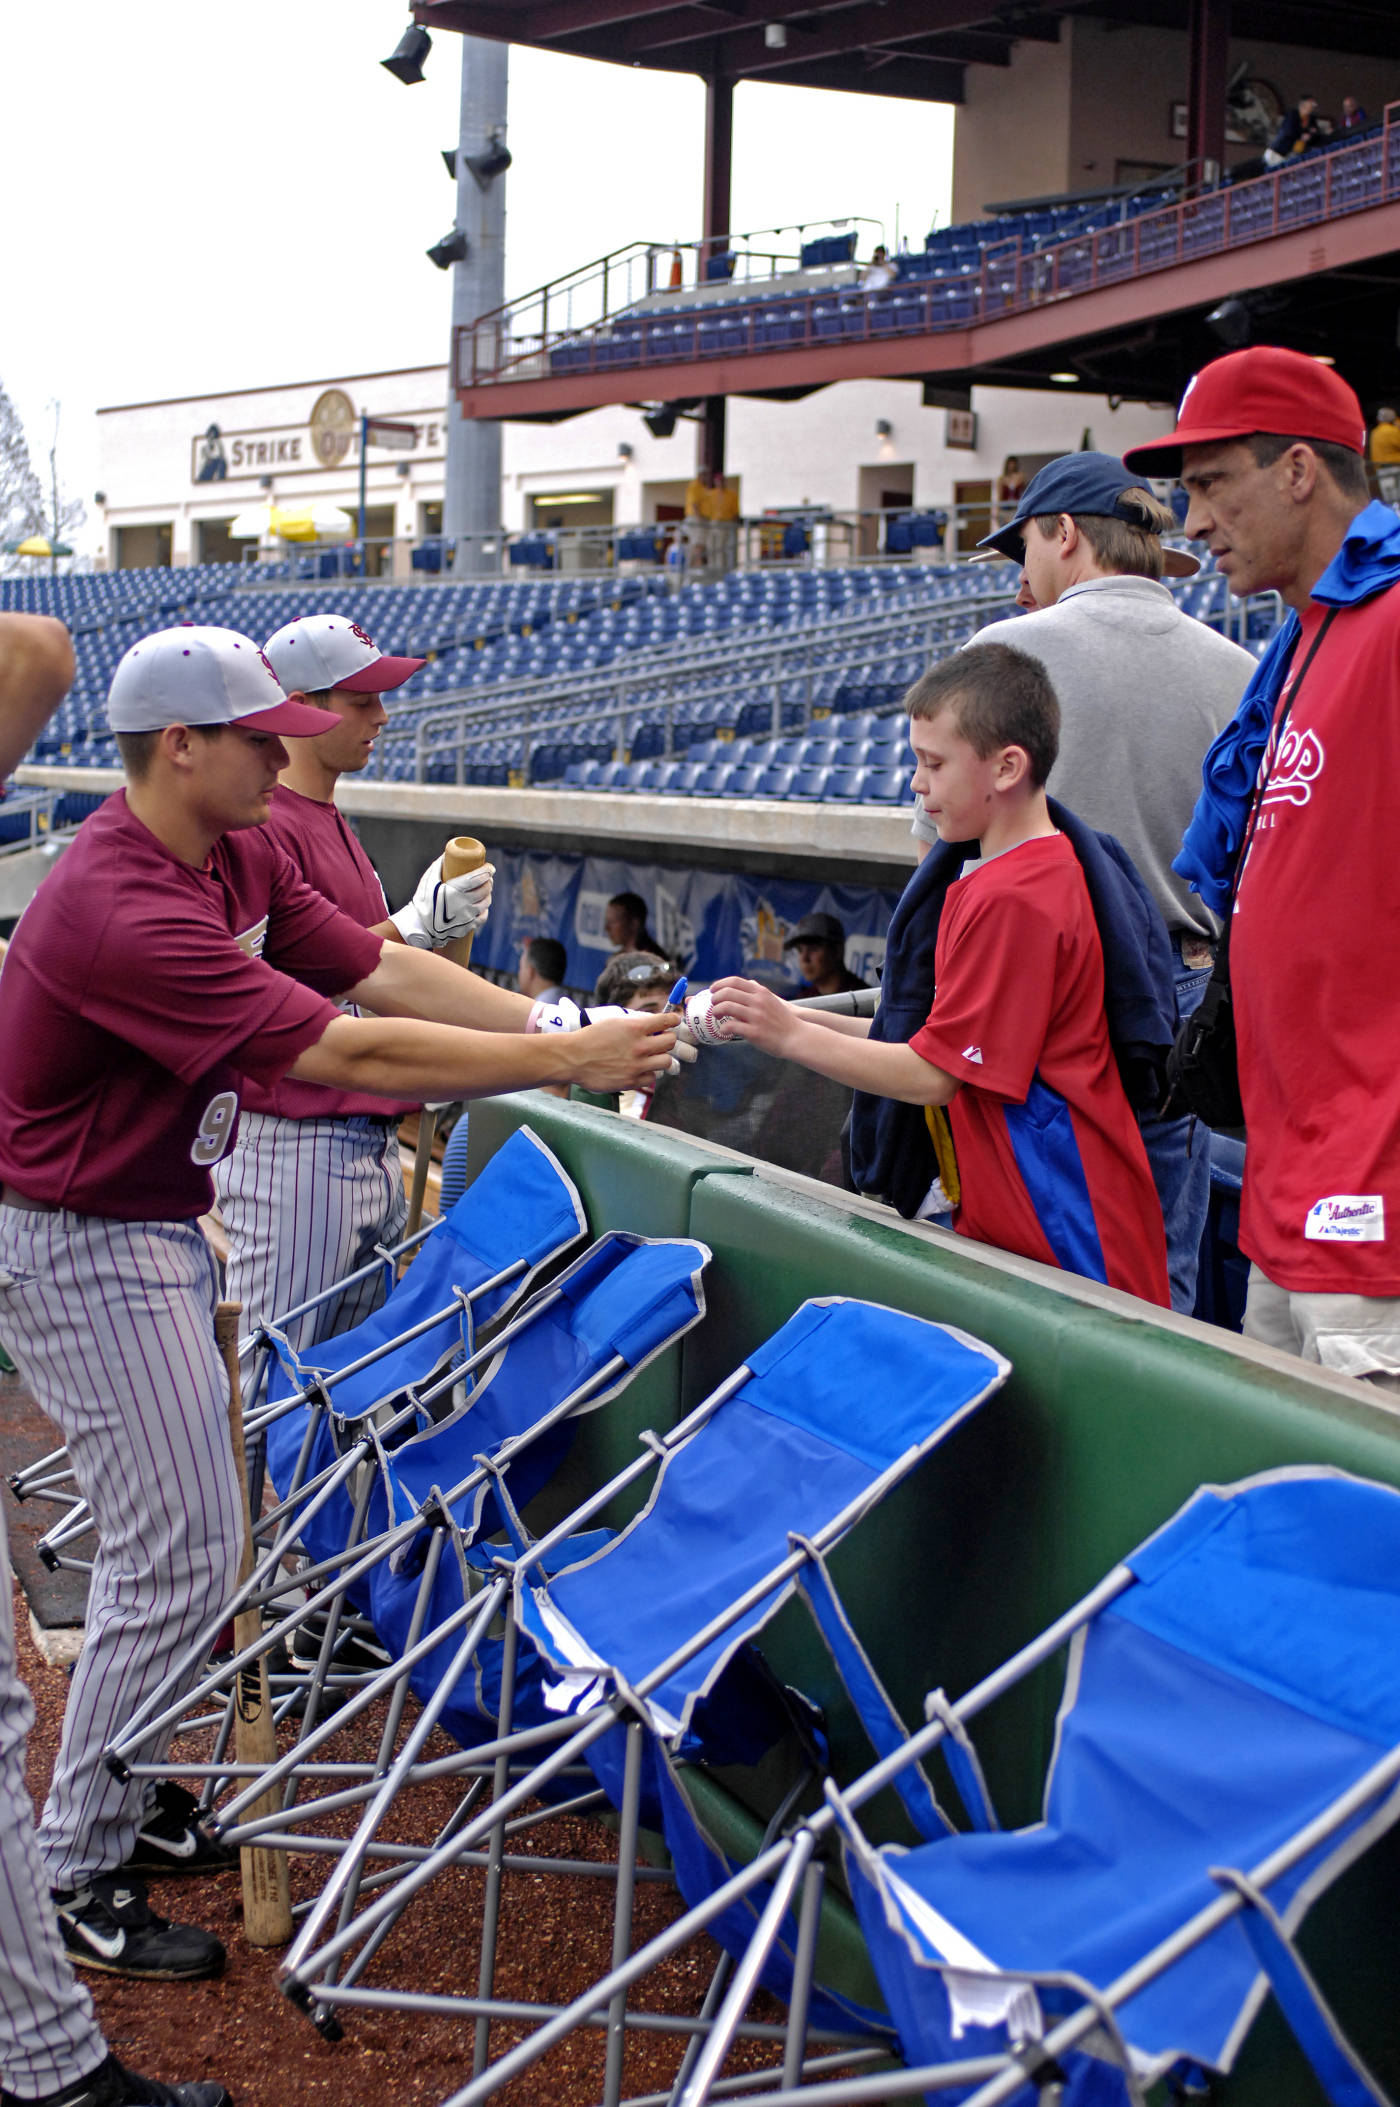 Ruairi O'Connor and Mike McGee take time for autographs before Tuesday's exhibition